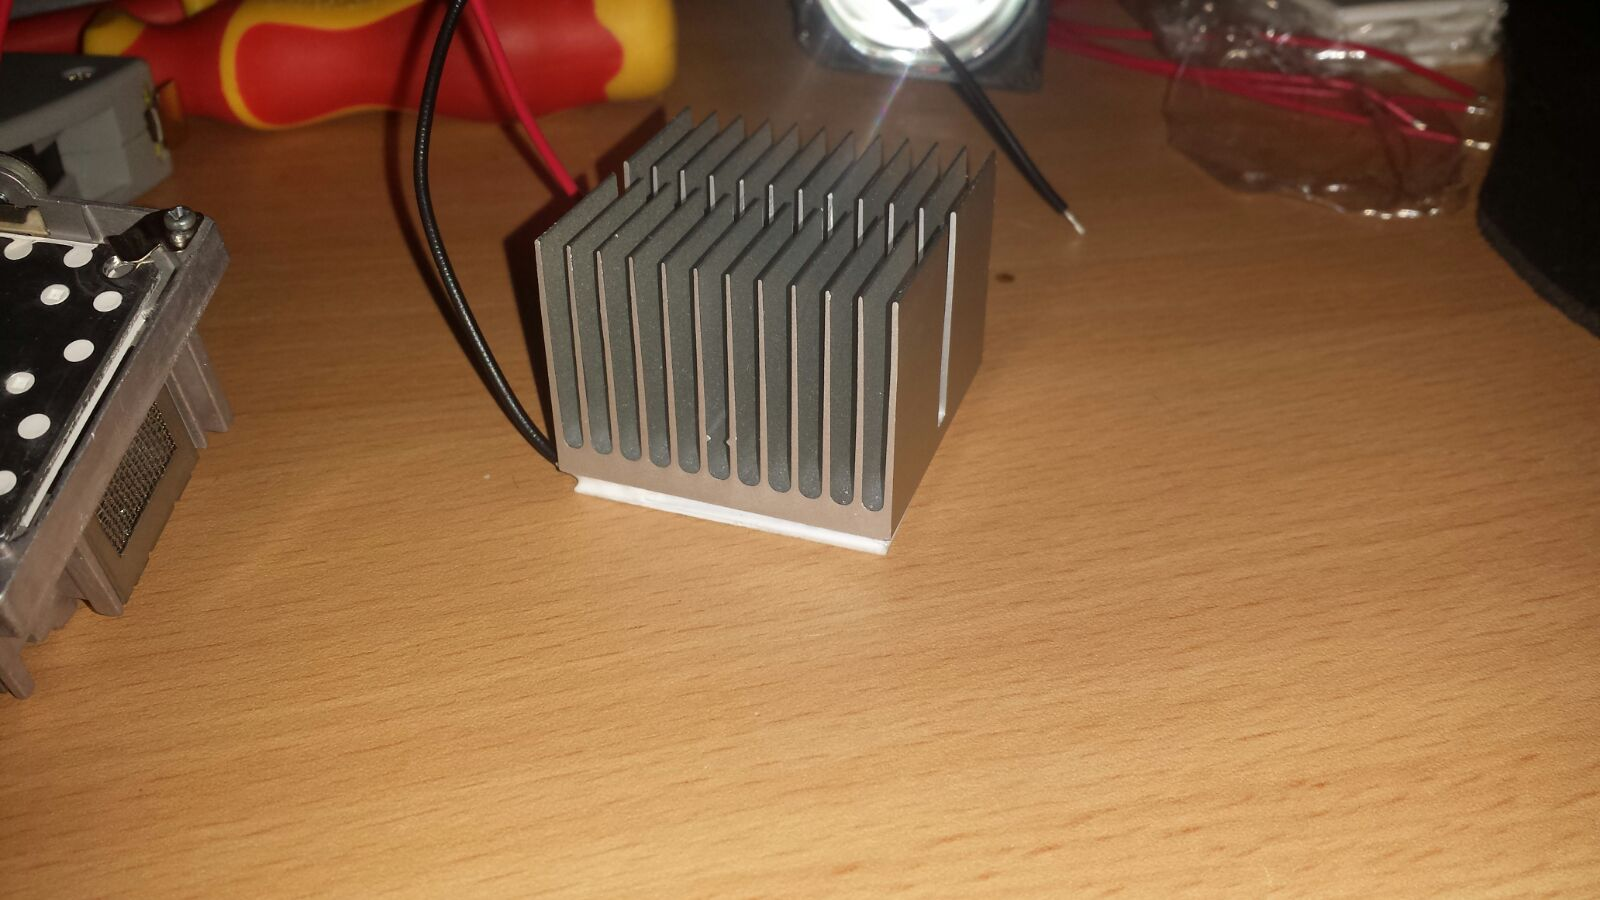 Beamer Lamp Diy Led Beamer Lamp With Peltier Cooling Hackaday Io